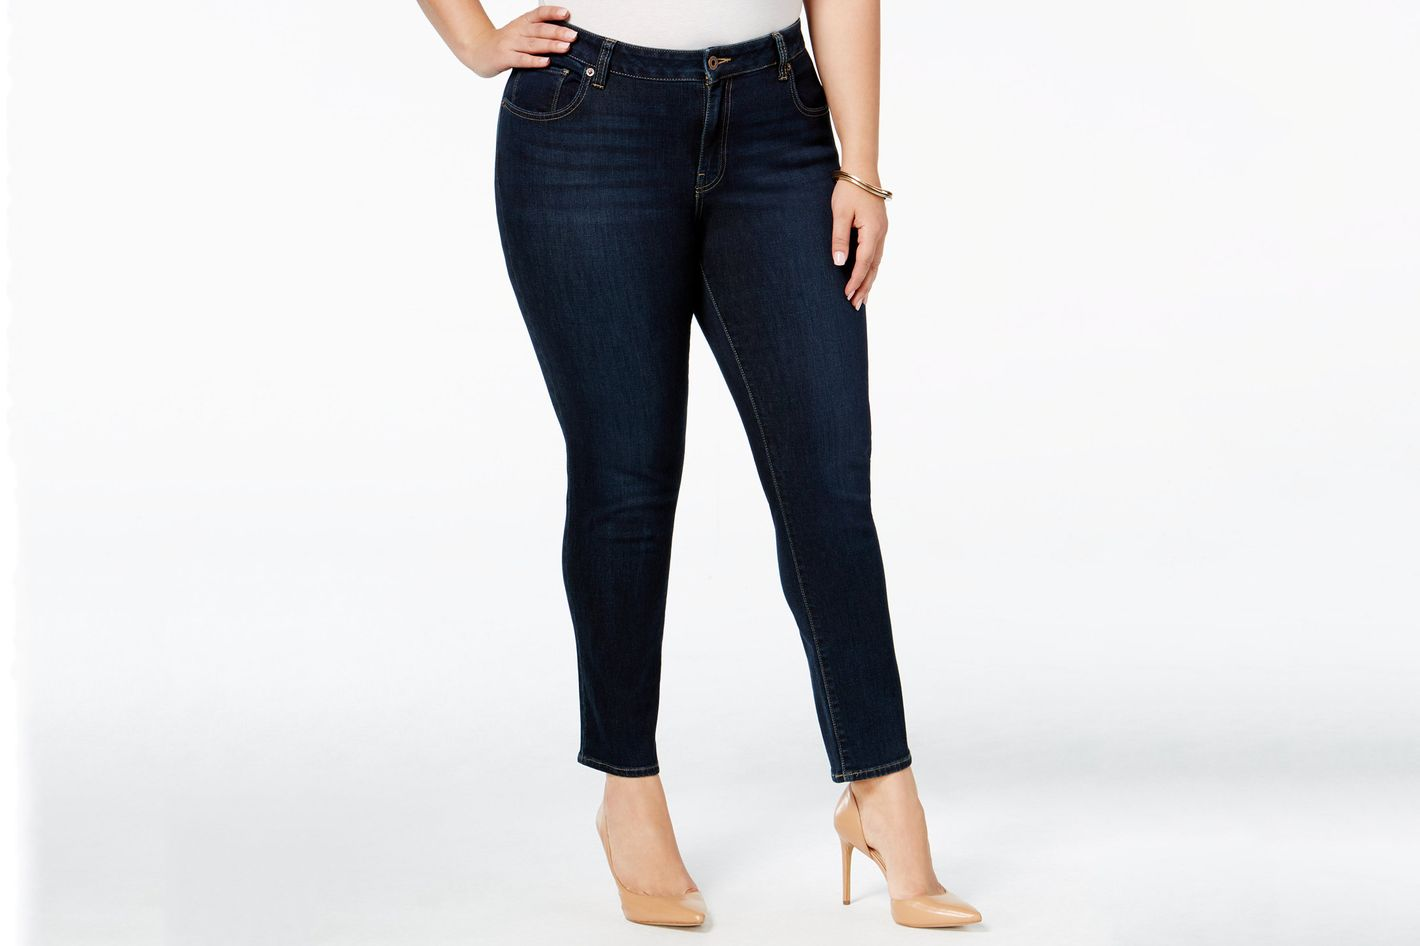 c111ef7abc8 10 Best Plus-Size Jeans According to Real Women 2018